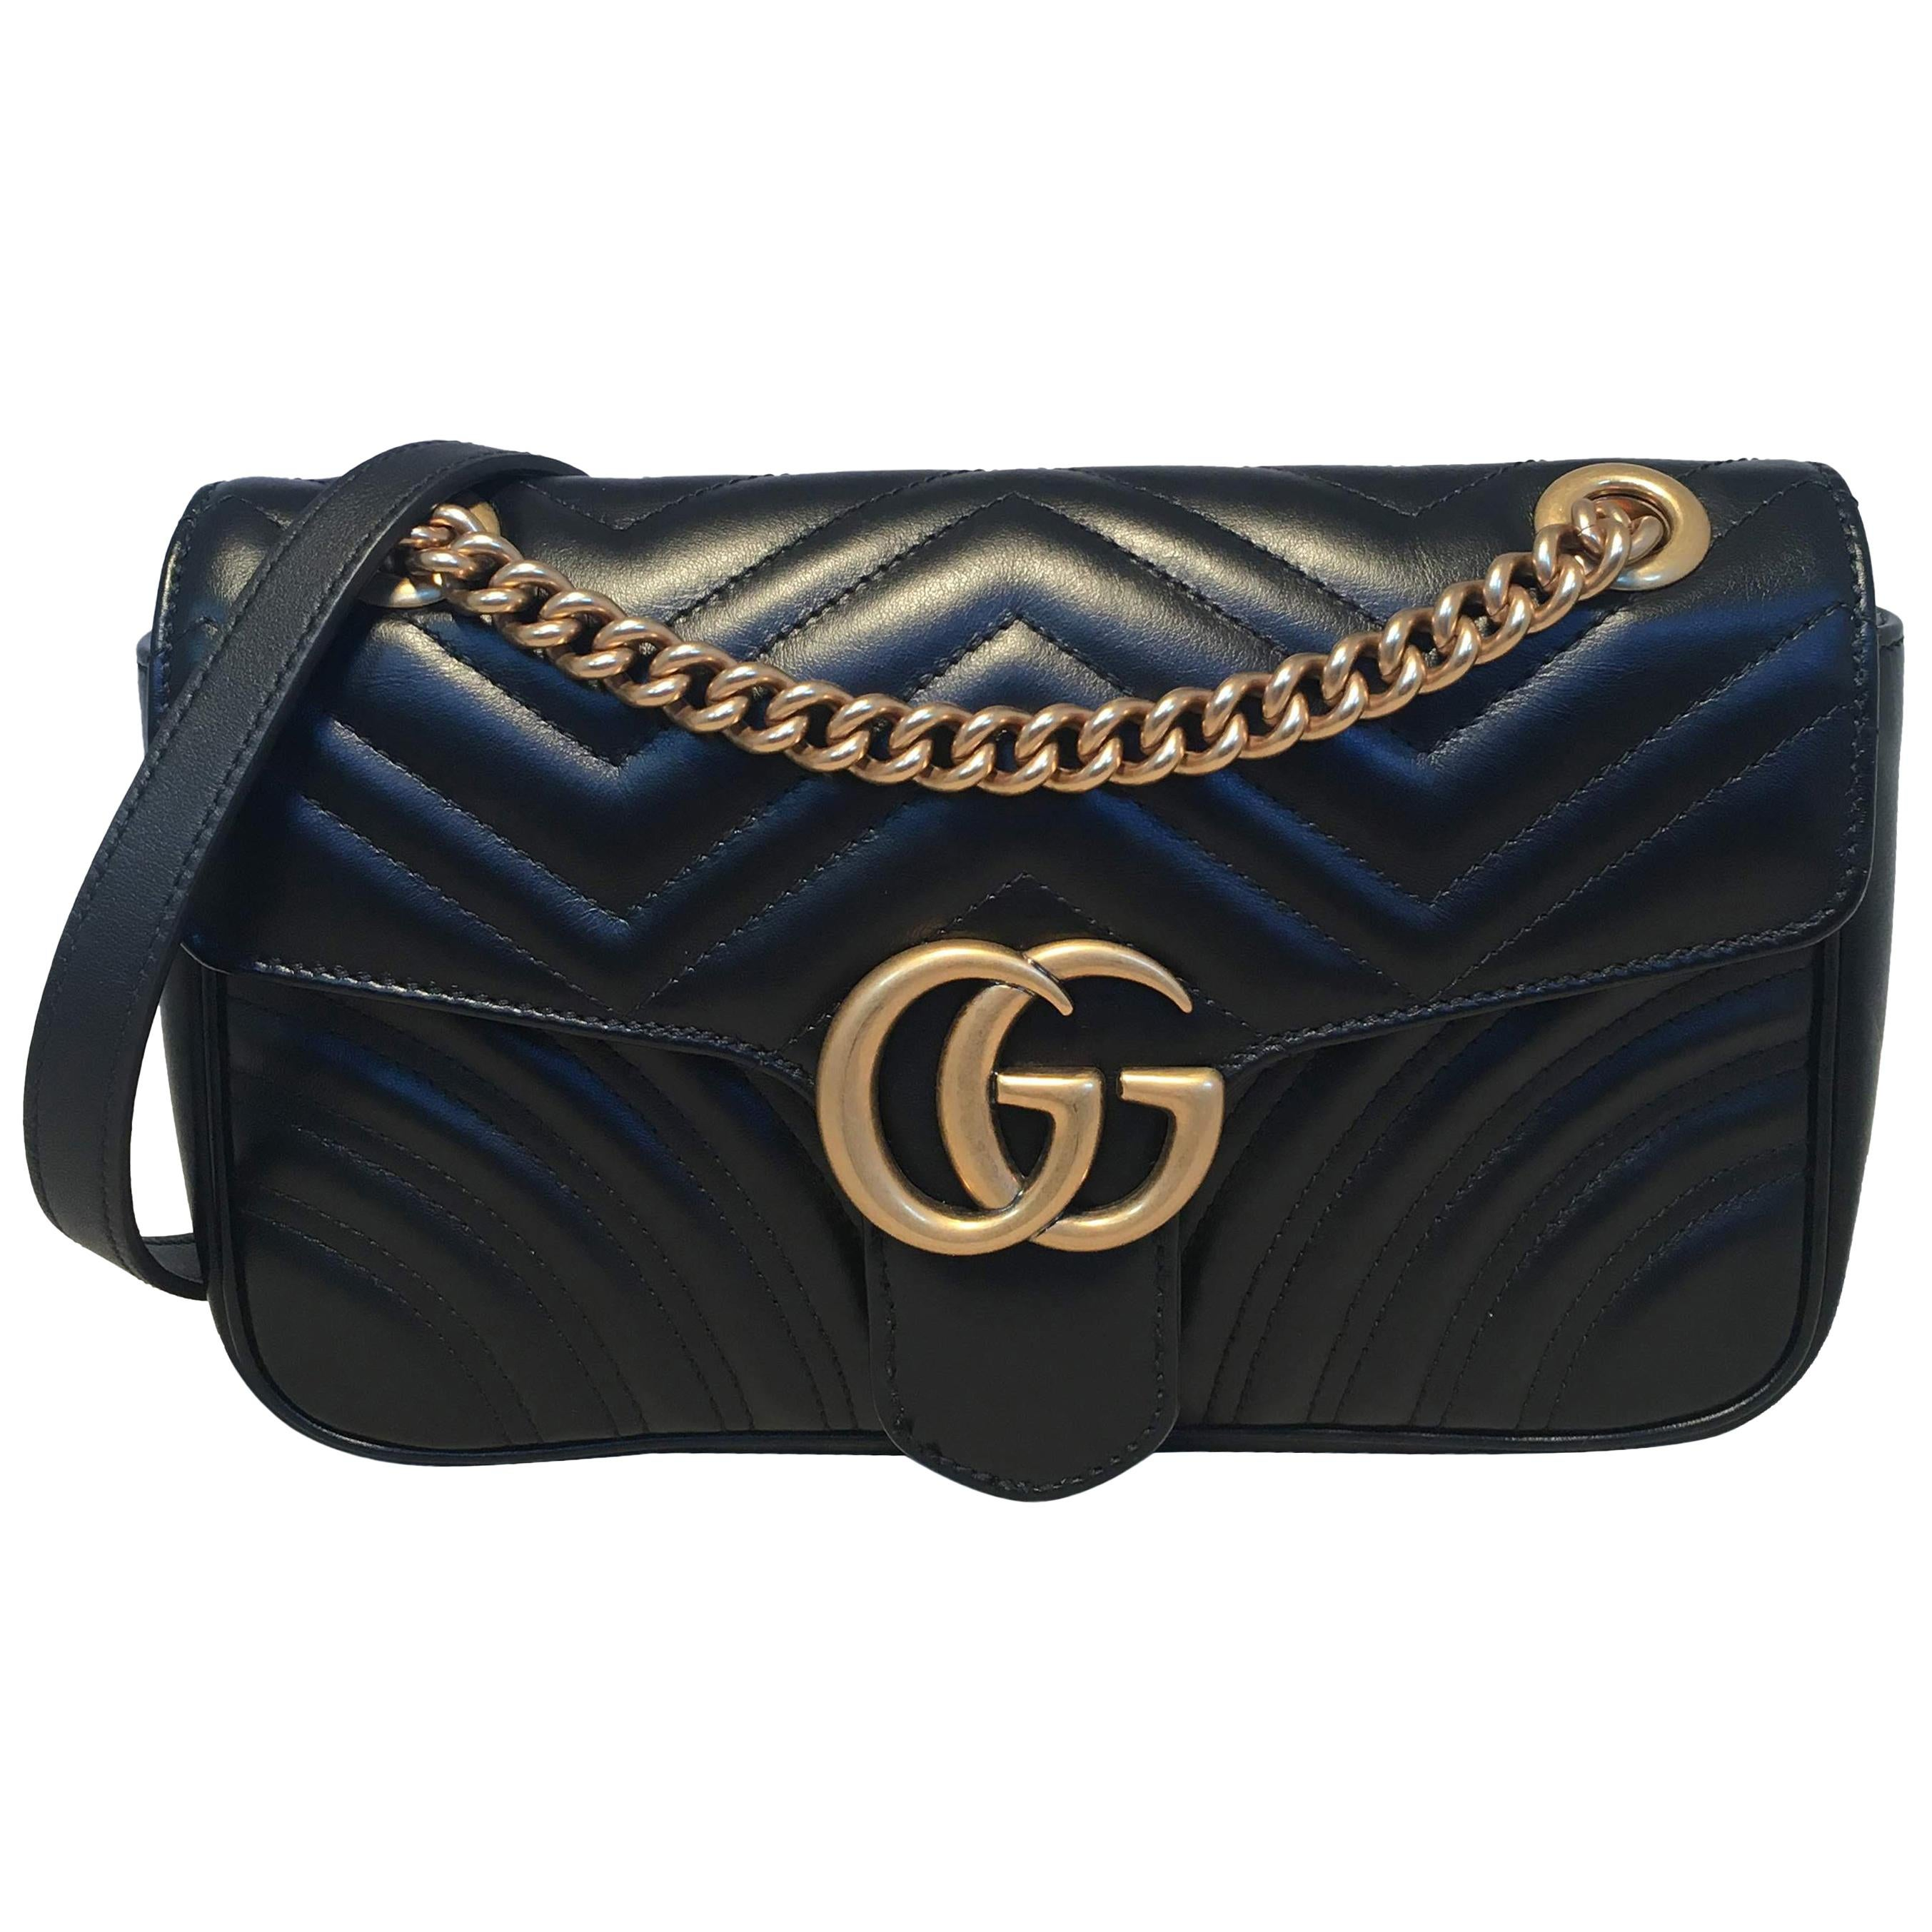 5c5306b5cfa3 Gucci GG Marmont Small Matelassé Black Leather Shoulder Bag For Sale at  1stdibs